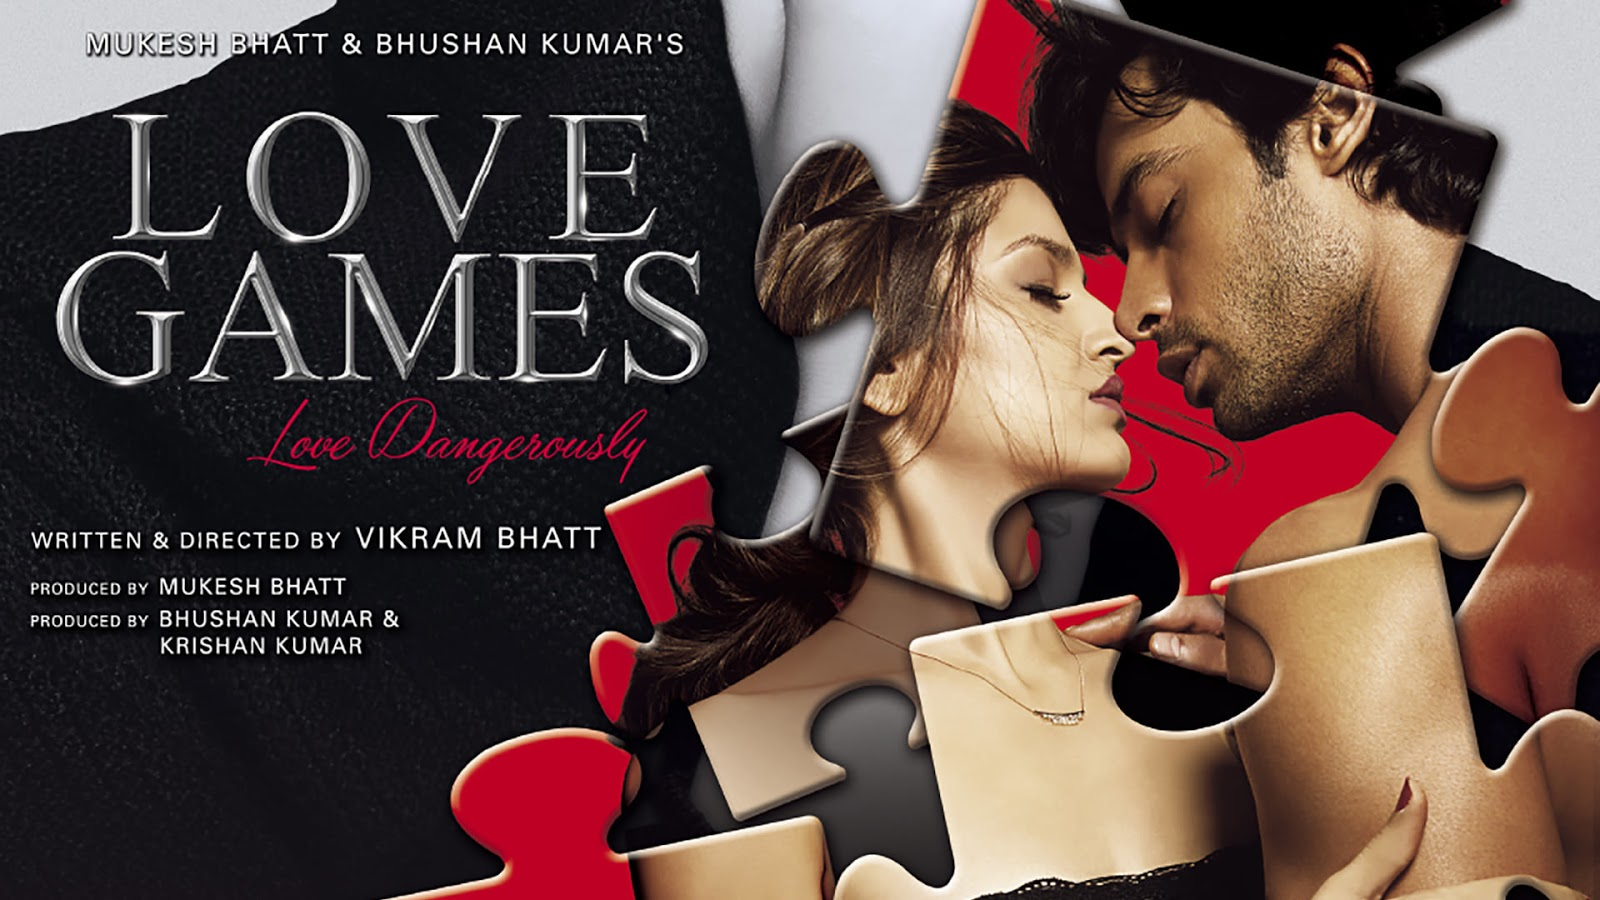 Complete cast and crew of Love Games (2016) bollywood hindi movie wiki, poster, Trailer, music list - Patralekha, Gaurav Arora and Tara Alisha Berry, Movie release date April 8, 2016